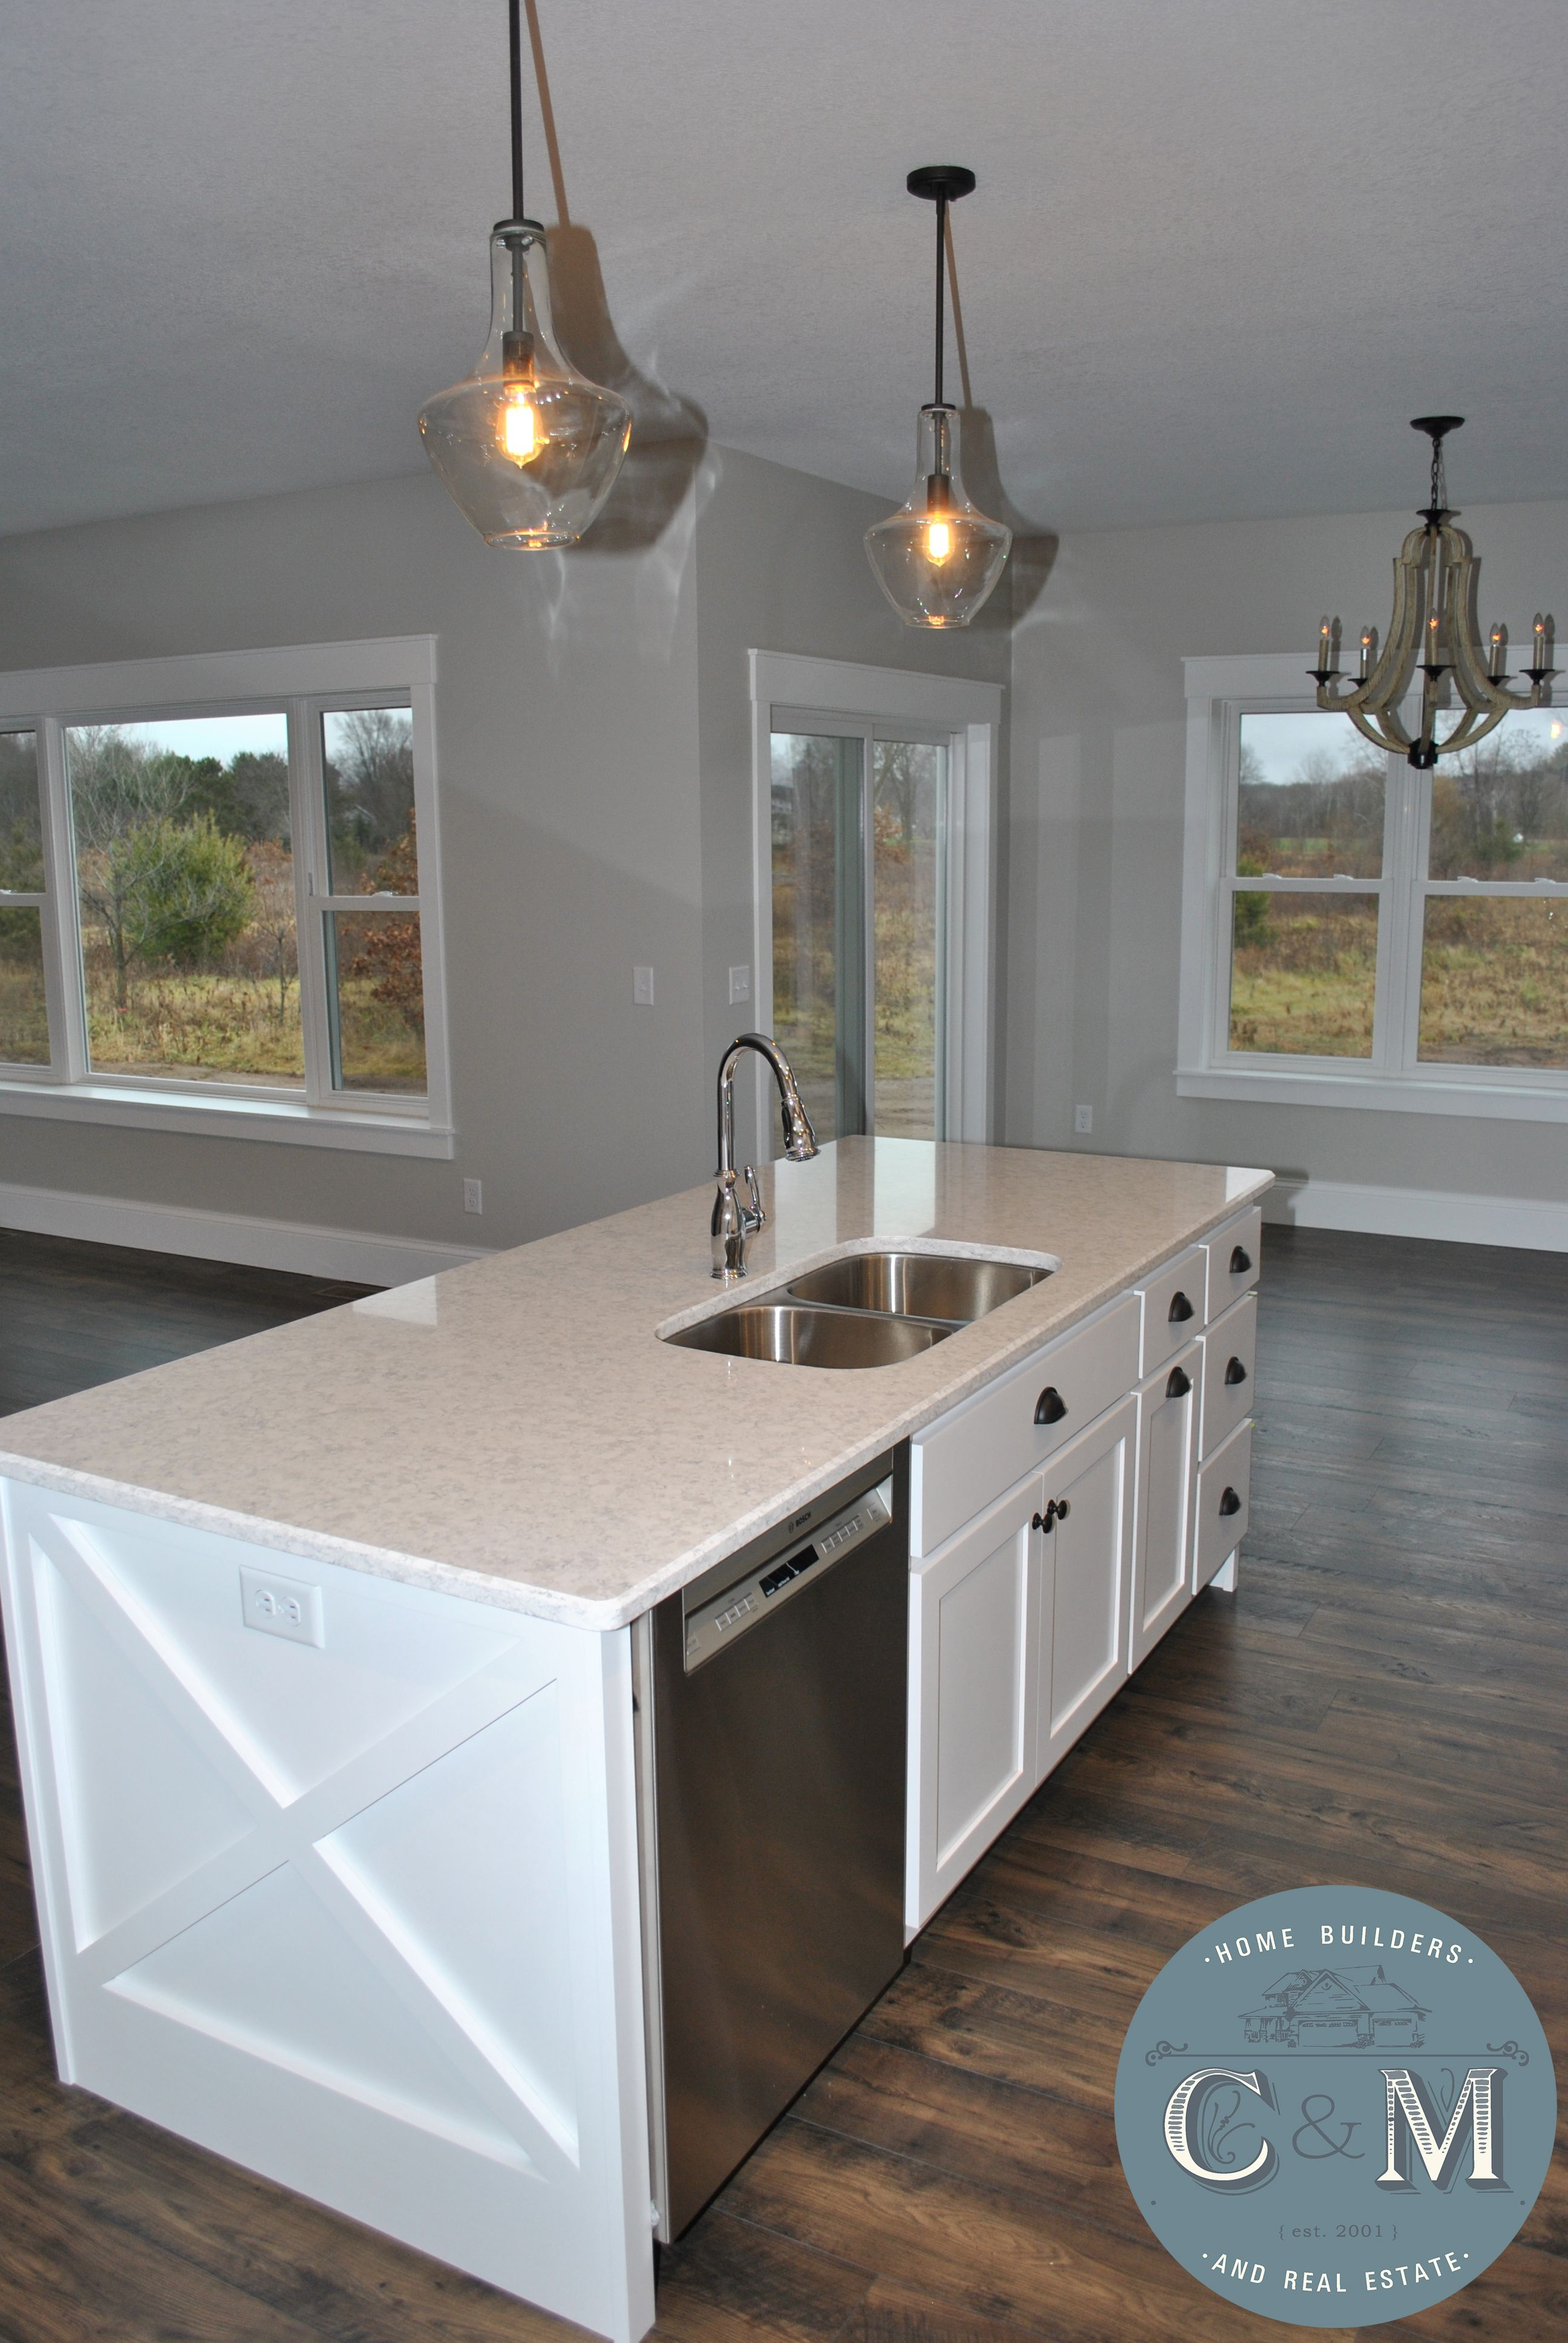 farmhouse style kitchen island   c&m home builders and real estate